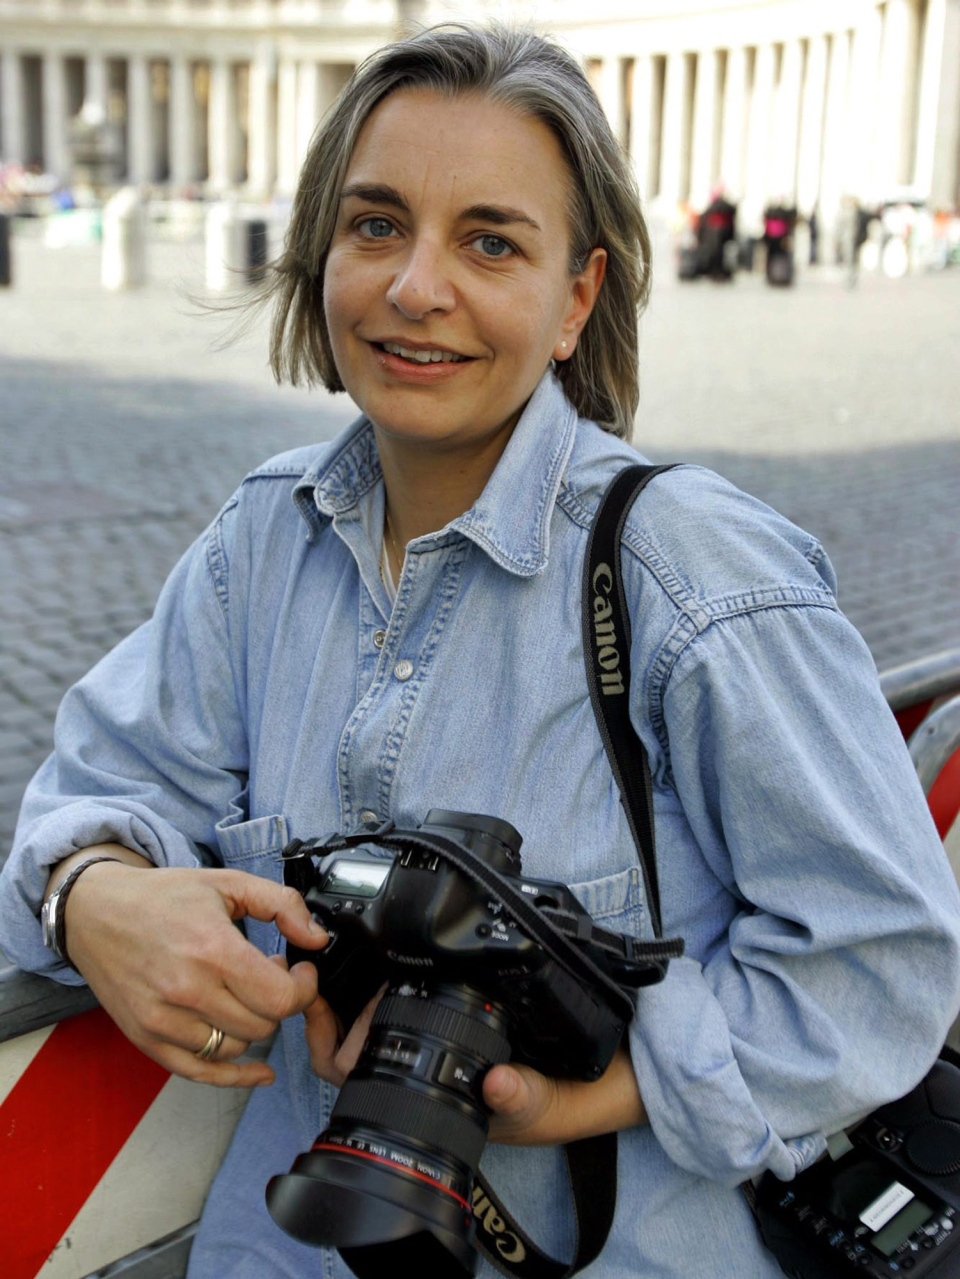 Anja Niedringhaus in Rome, April 7, 2005. (AP / Peter Dejong)